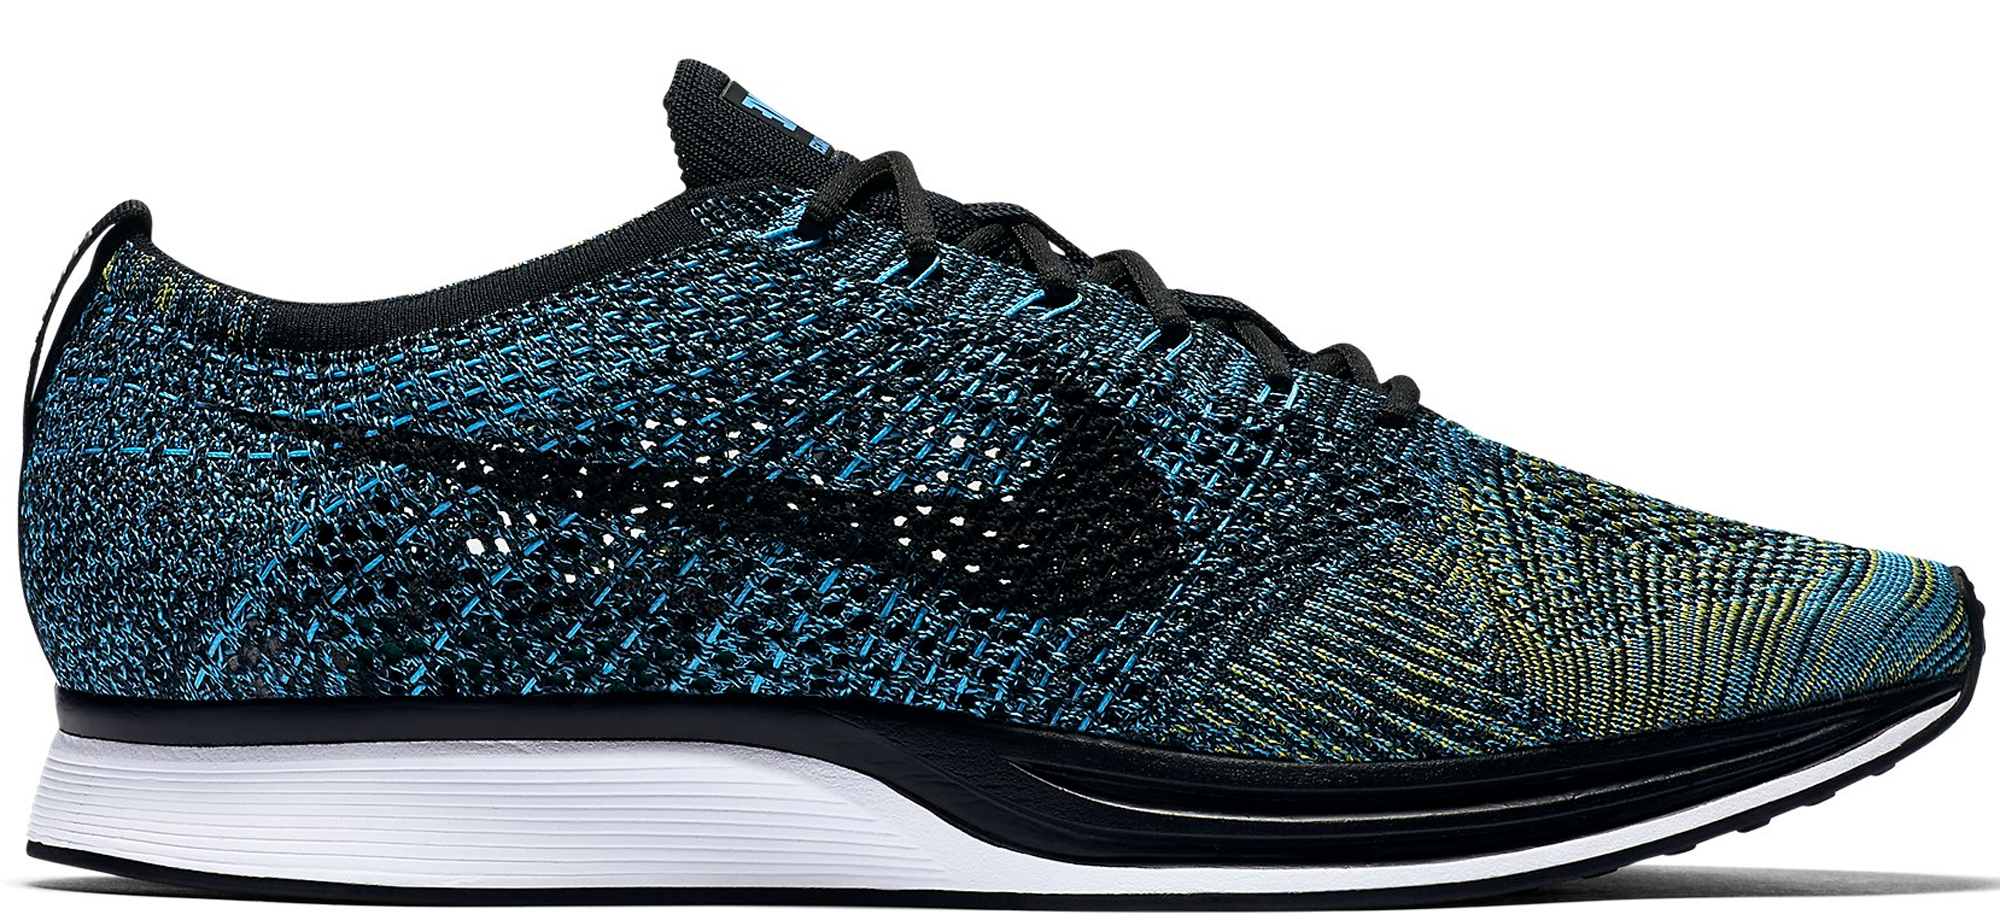 Nike Flyknit Racer 526628405 Blue Glow Yellow Strike Black 276221